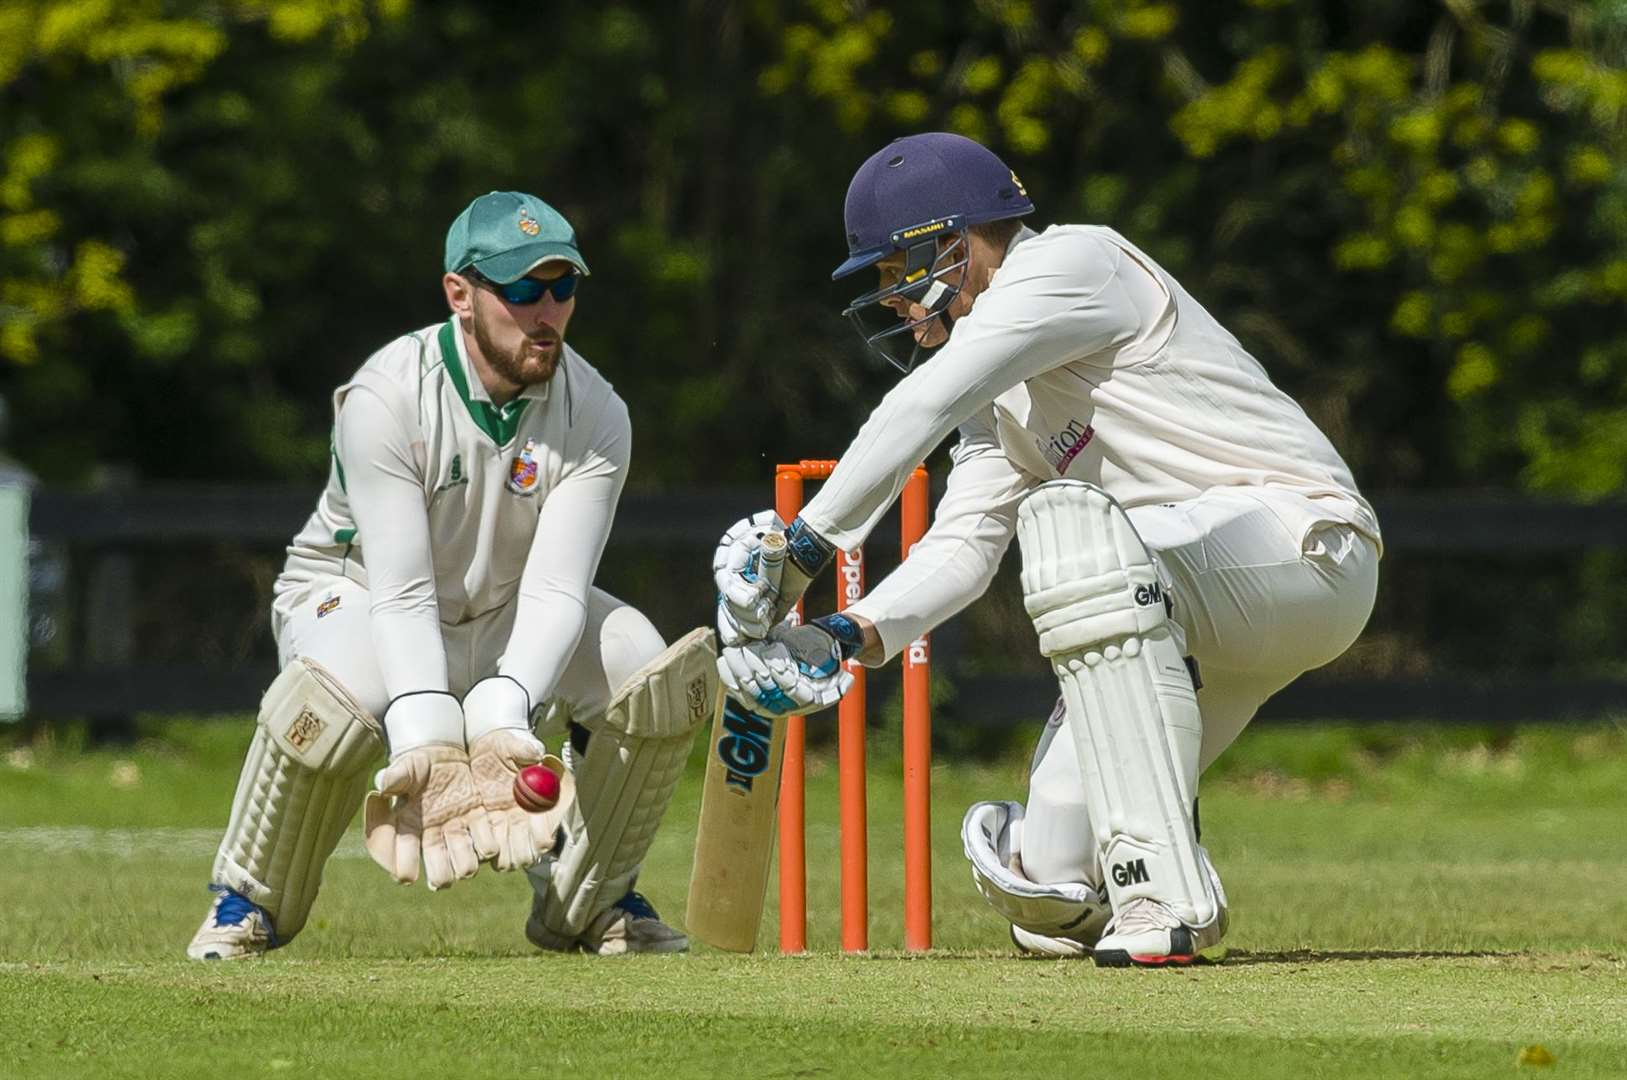 Matt Bint of Old Buckenham bats during the Alliance Premier League match between Old Buckenham and Horsford II...Picture: Mark Bullimore Photography. (9656719)